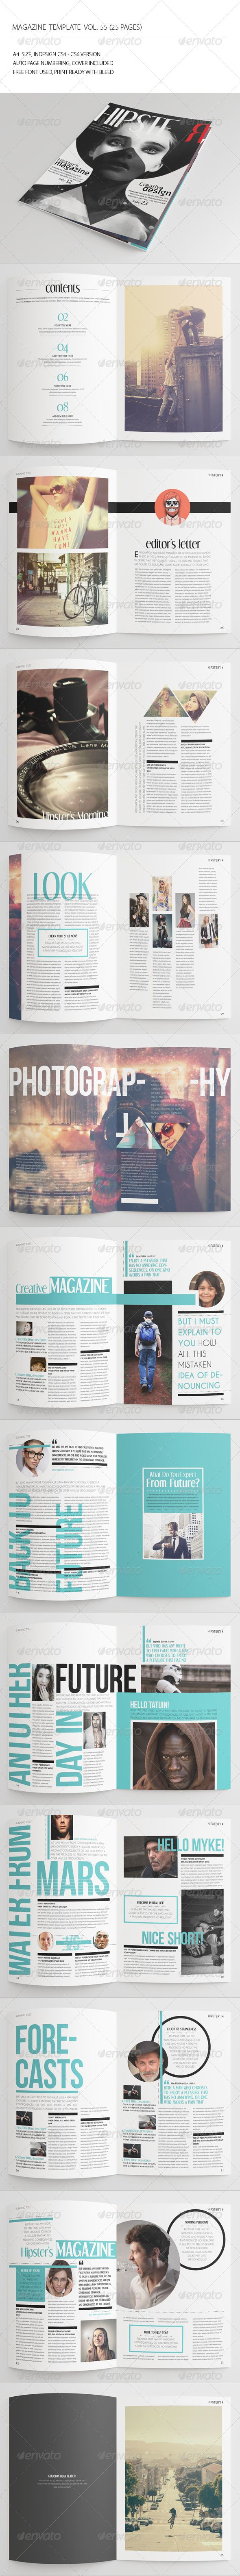 25 Pages Hipster Magazine Vol55  #grunge #hipster #indesign magazine • Available here → http://graphicriver.net/item/25-pages-hipster-magazine-vol55/7738074?s_rank=152&ref=pxcr